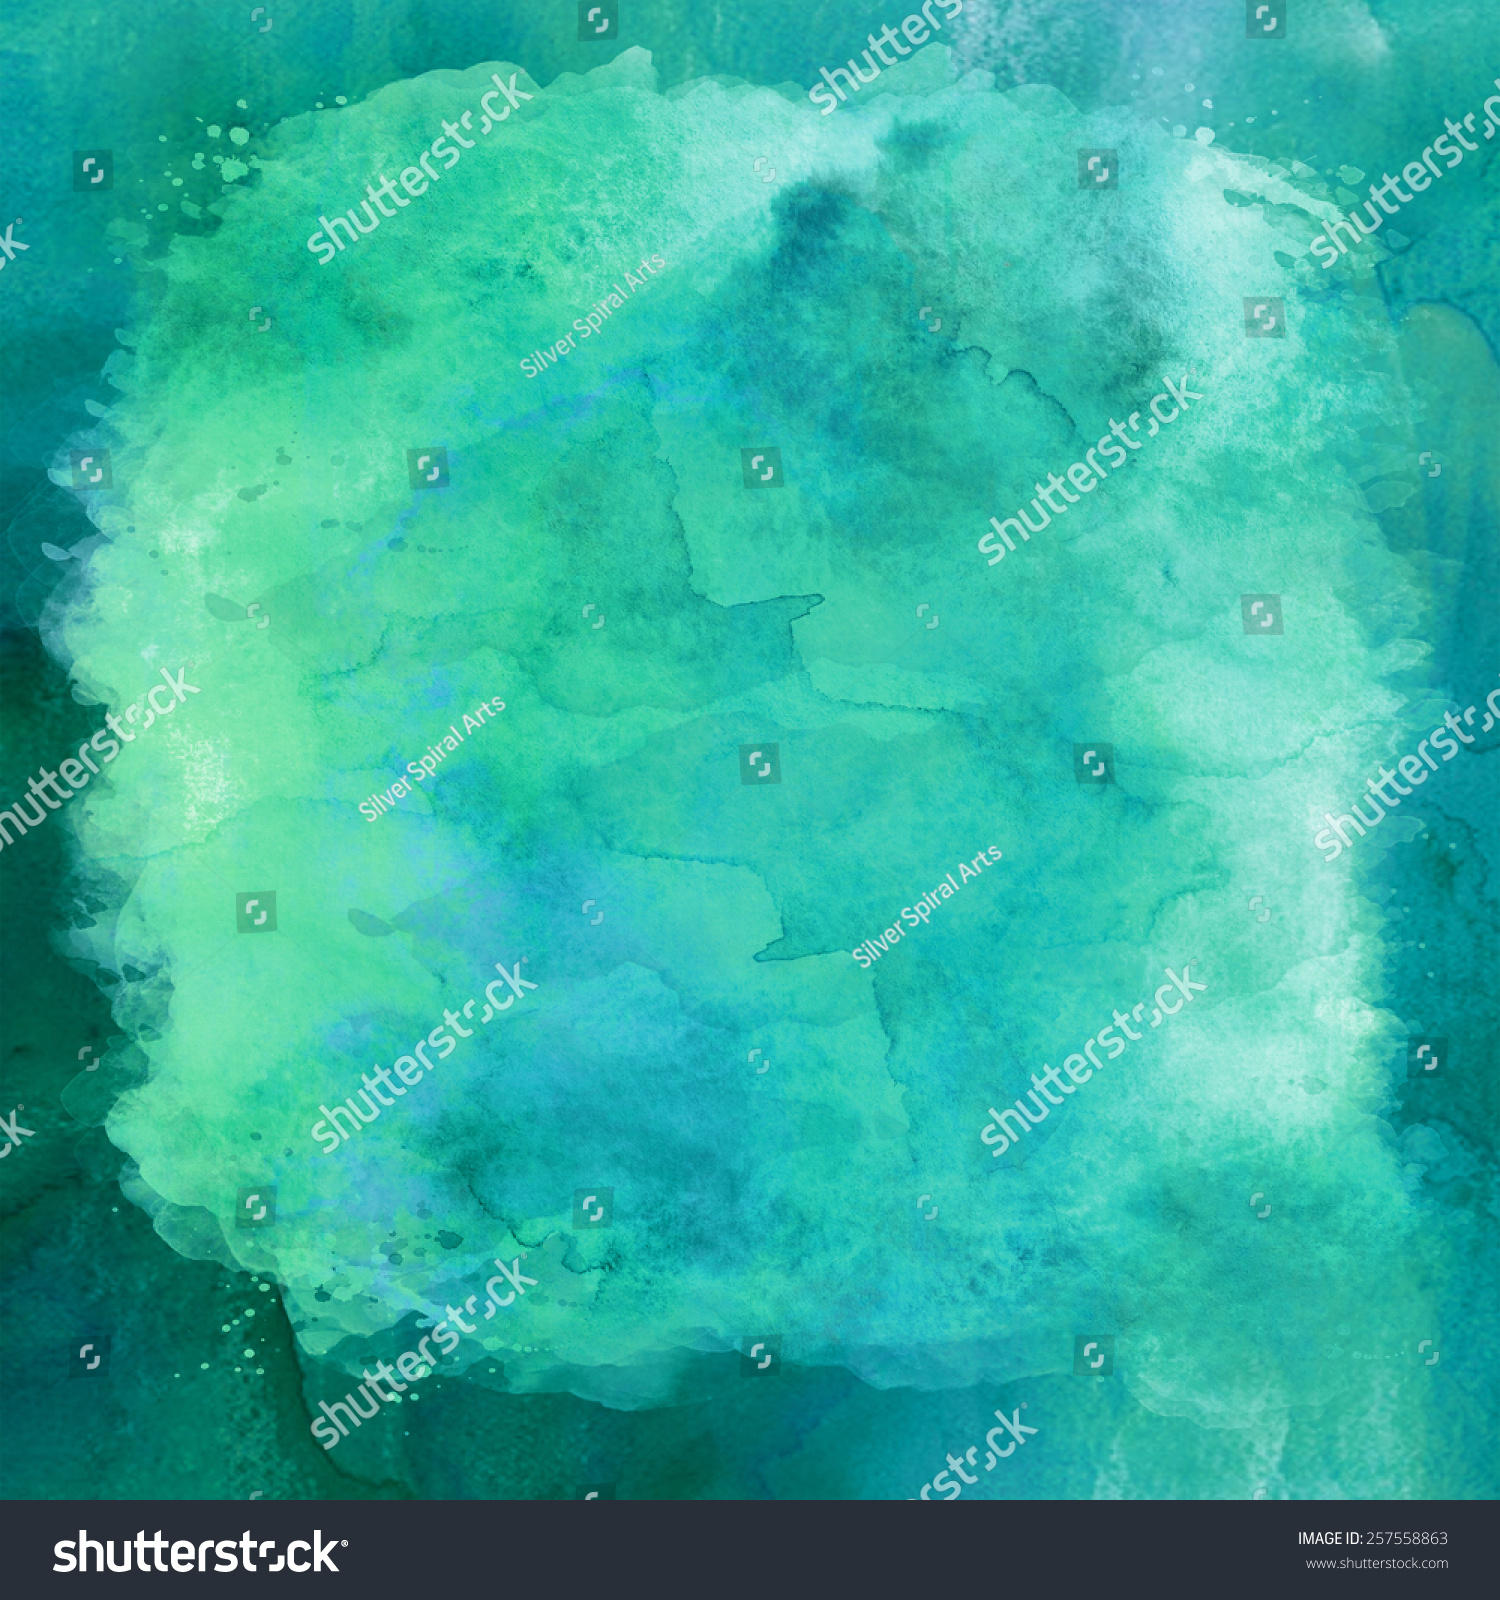 The Texture Of Teal And Turquoise: Blue And Green Aqua Teal Turquoise Watercolor Paper